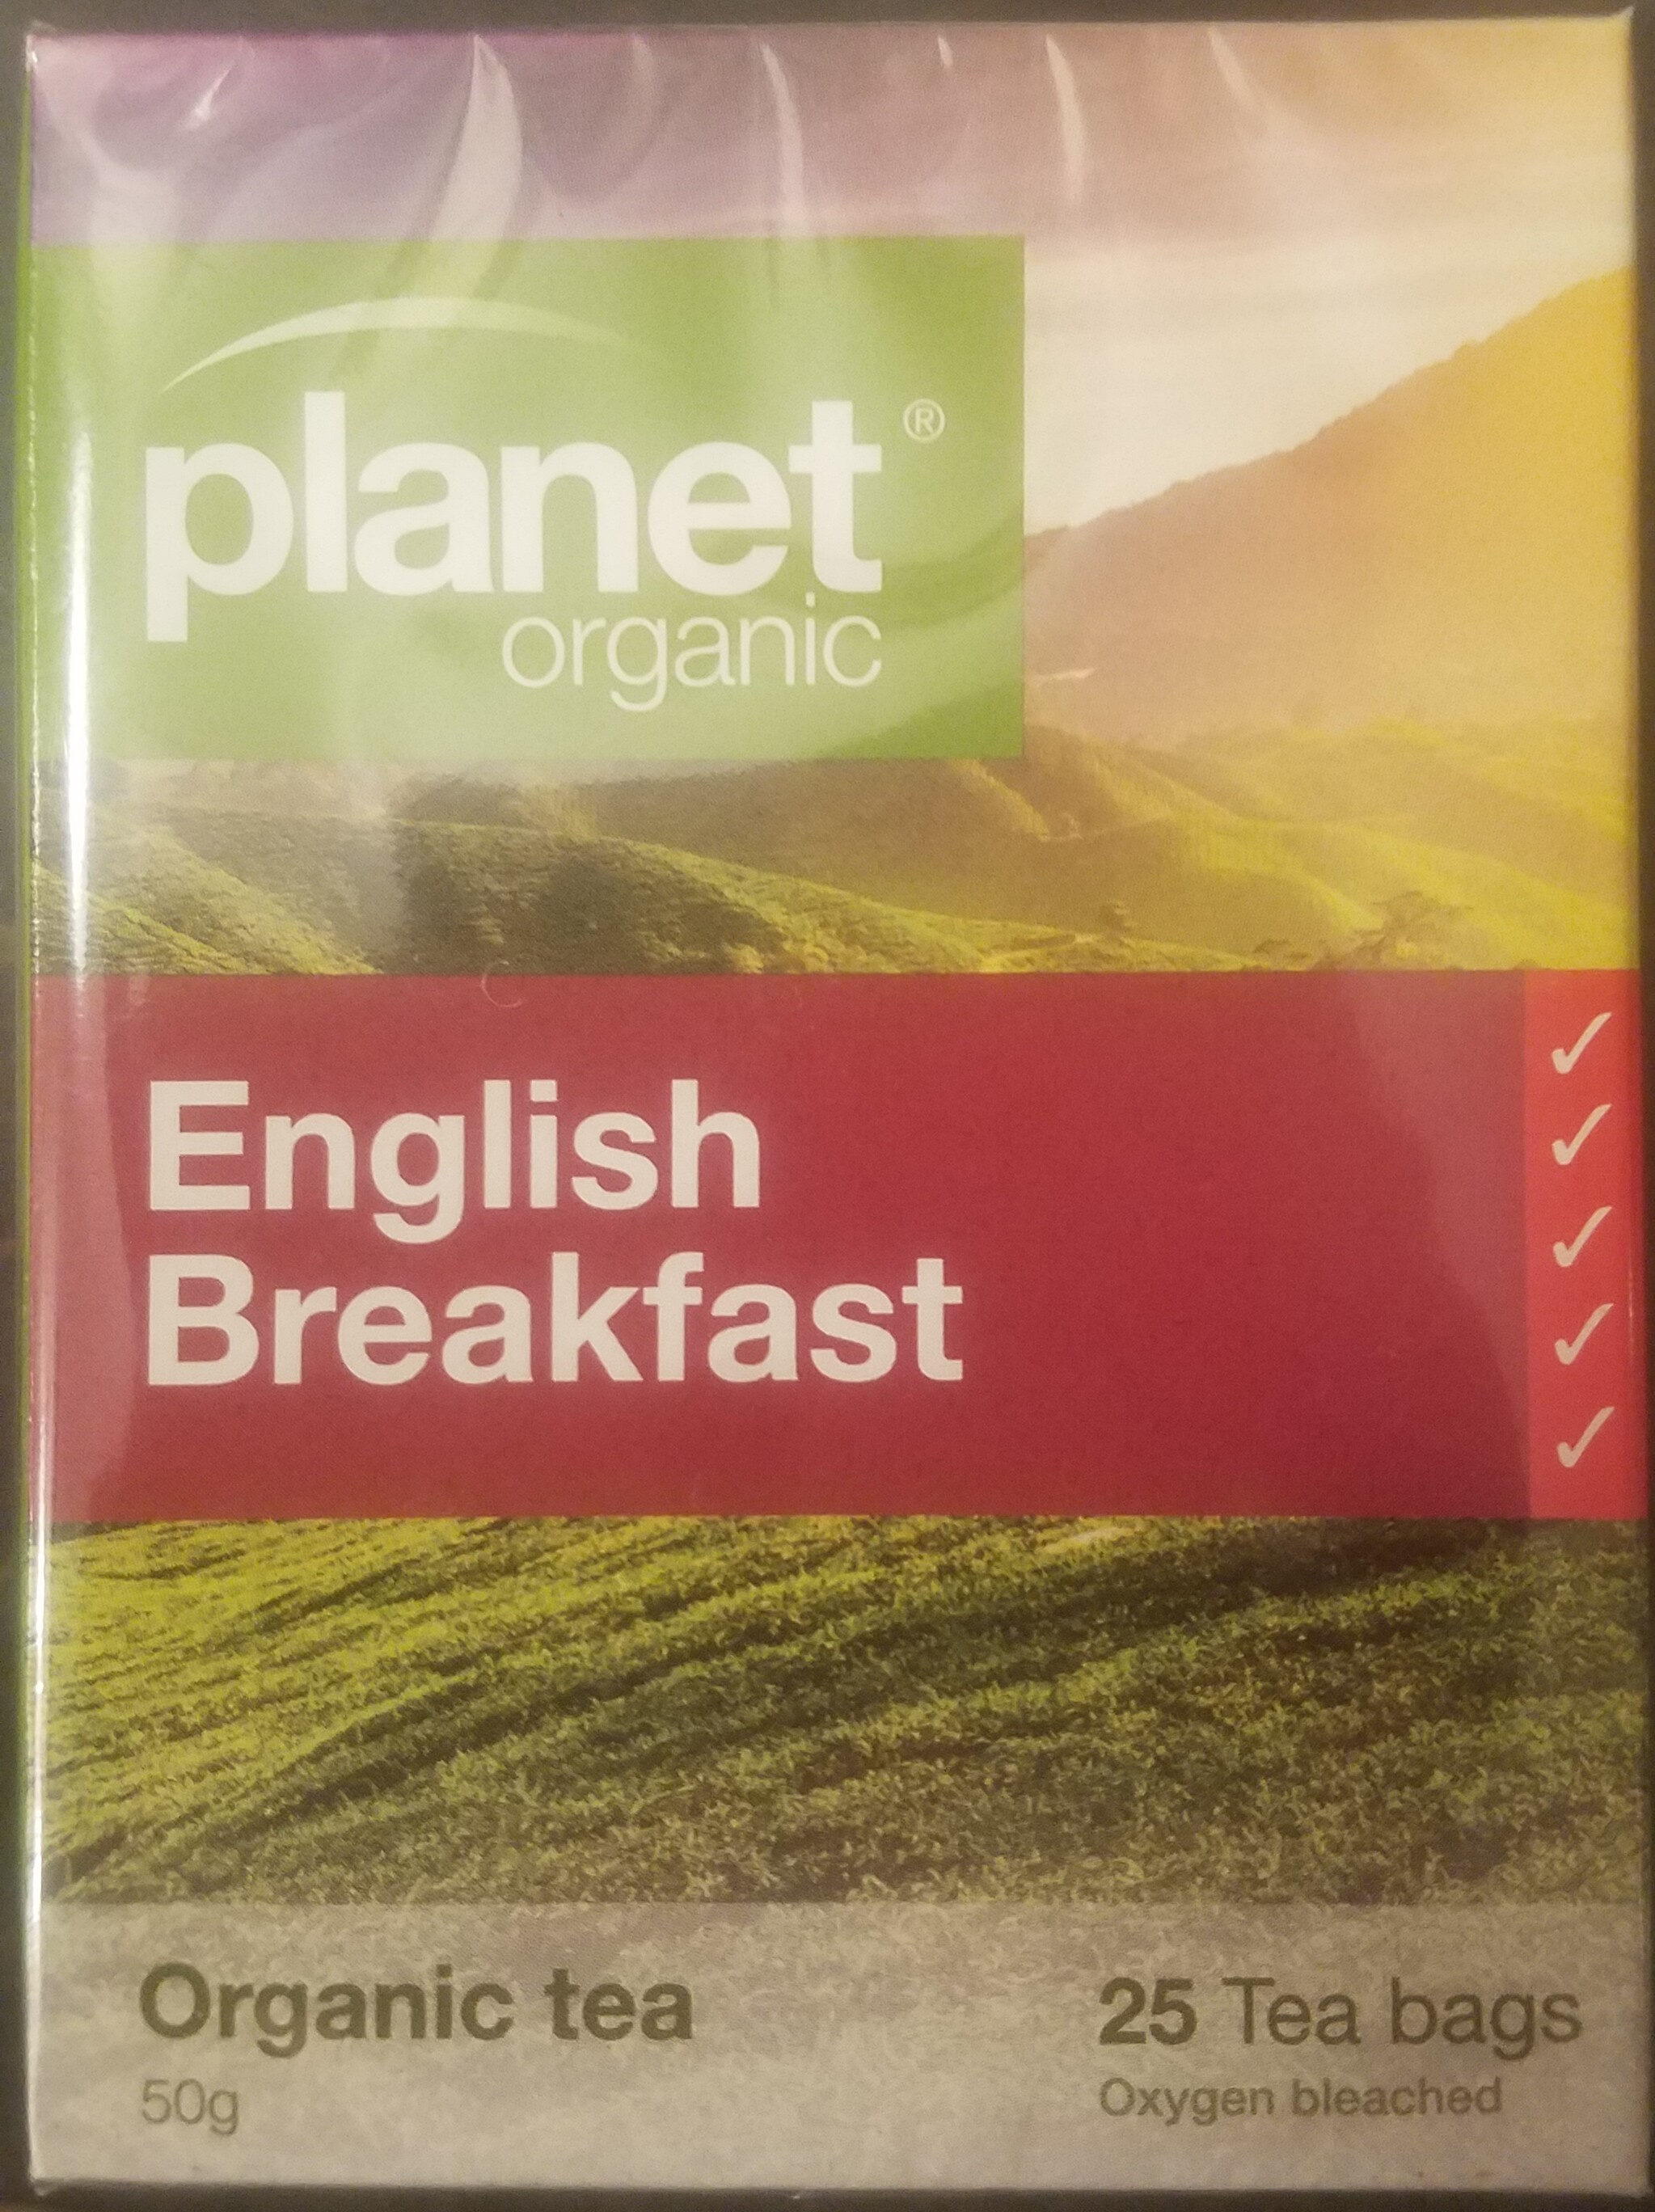 English Breakfast - Product